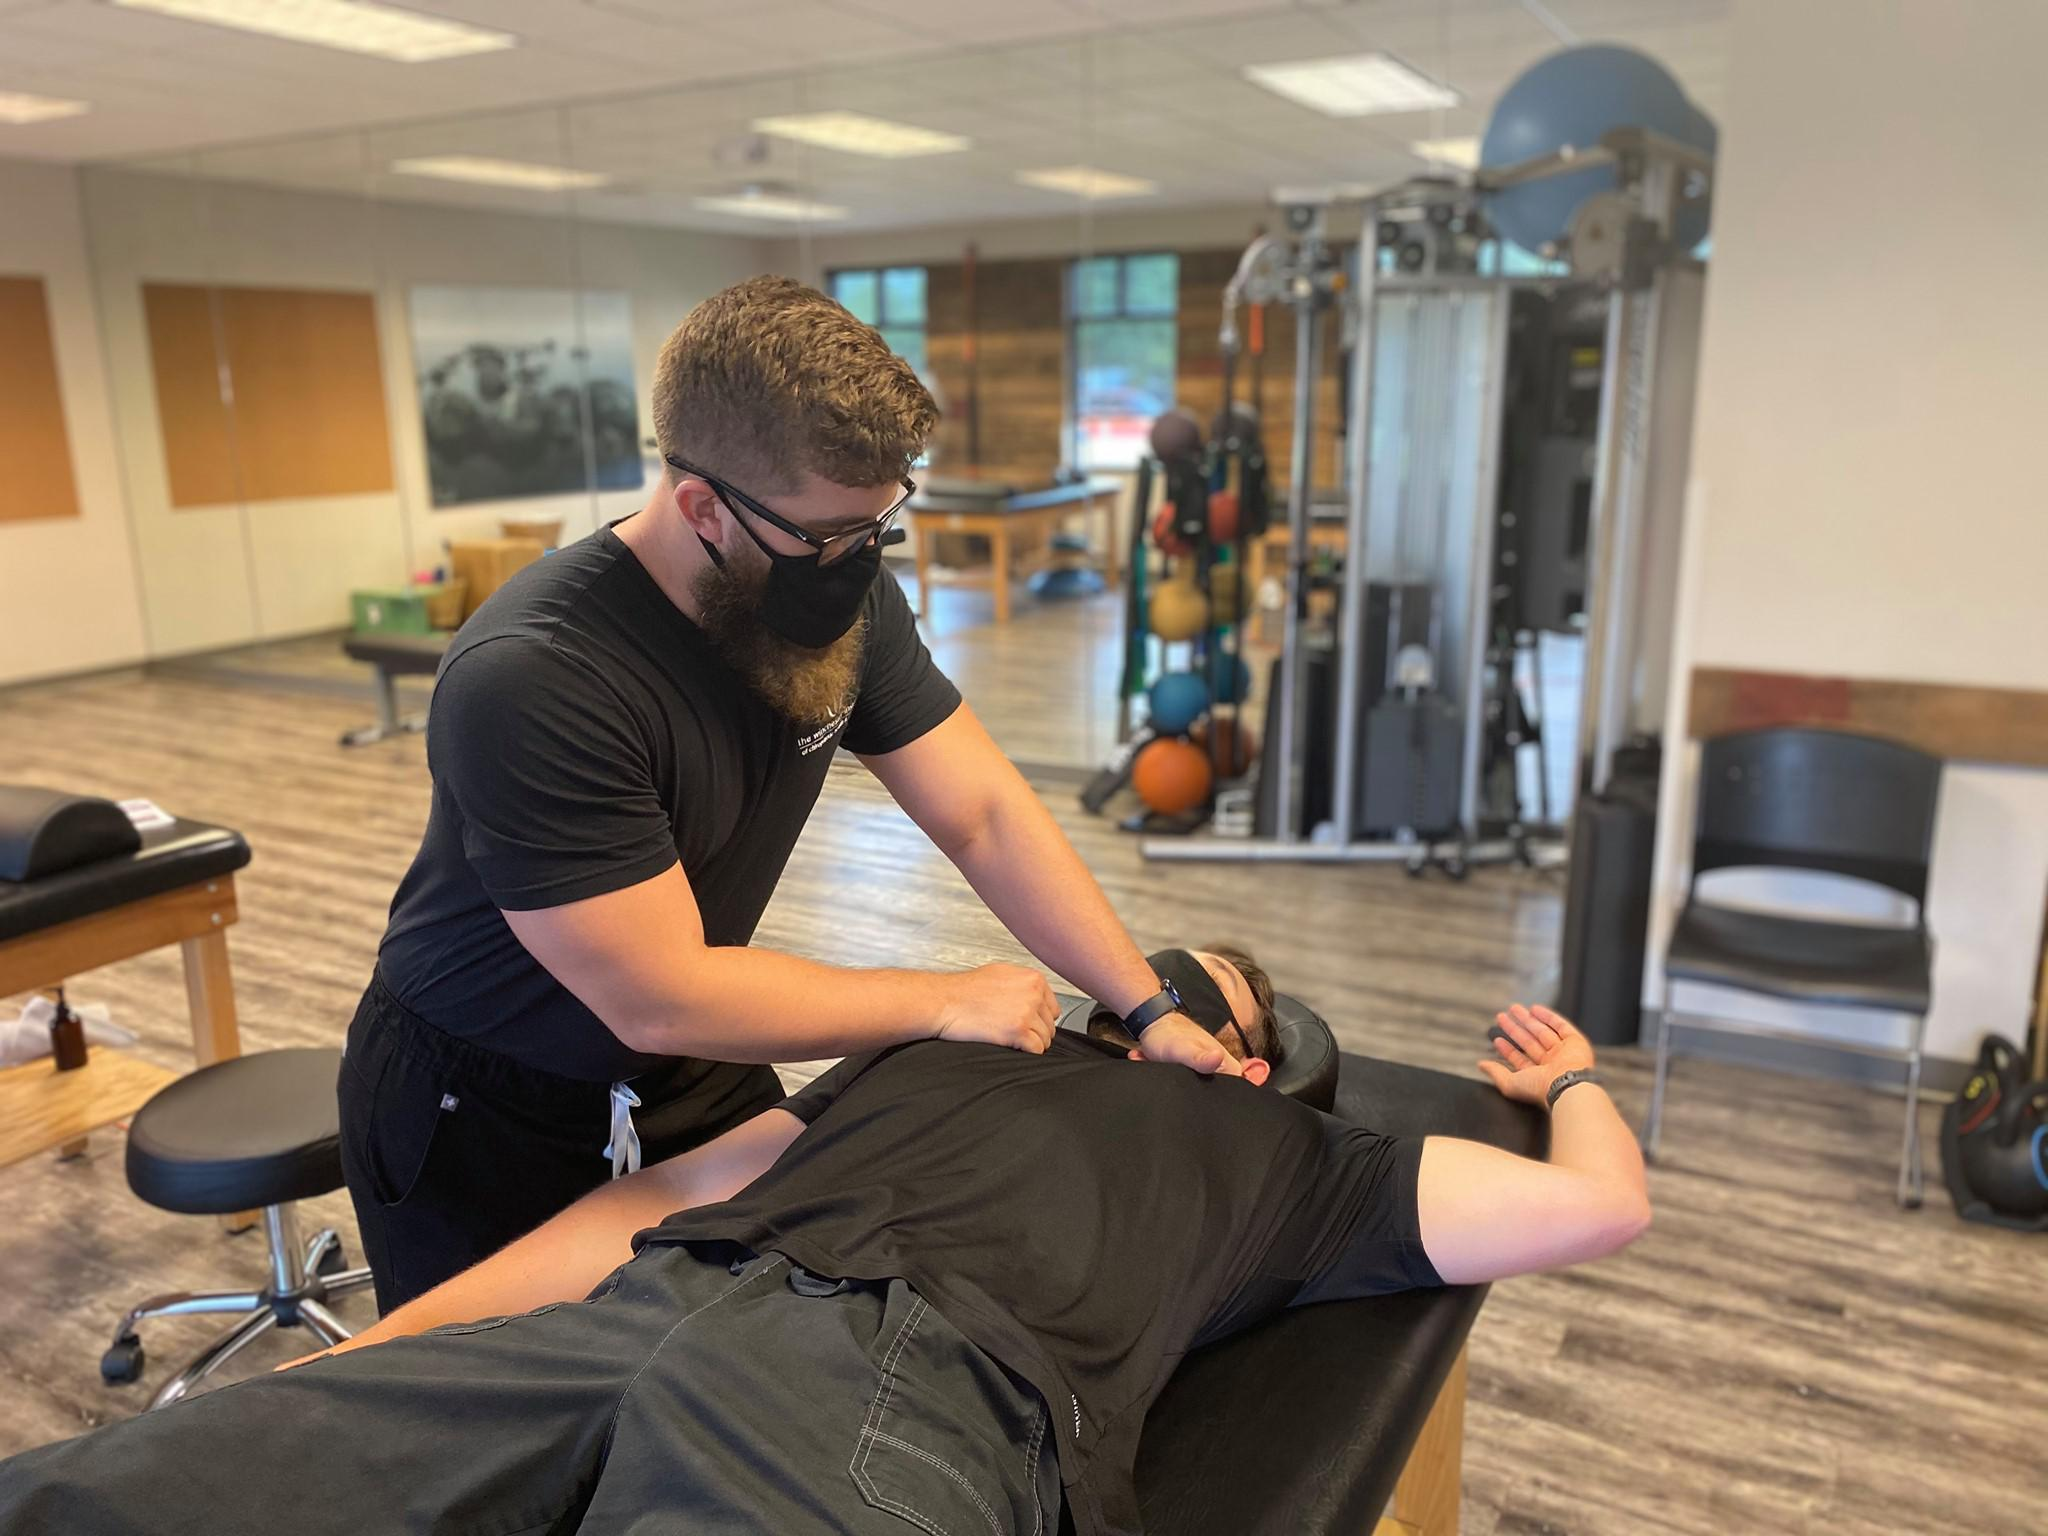 The Winchester Institute of Chiropractic Health and Wellness